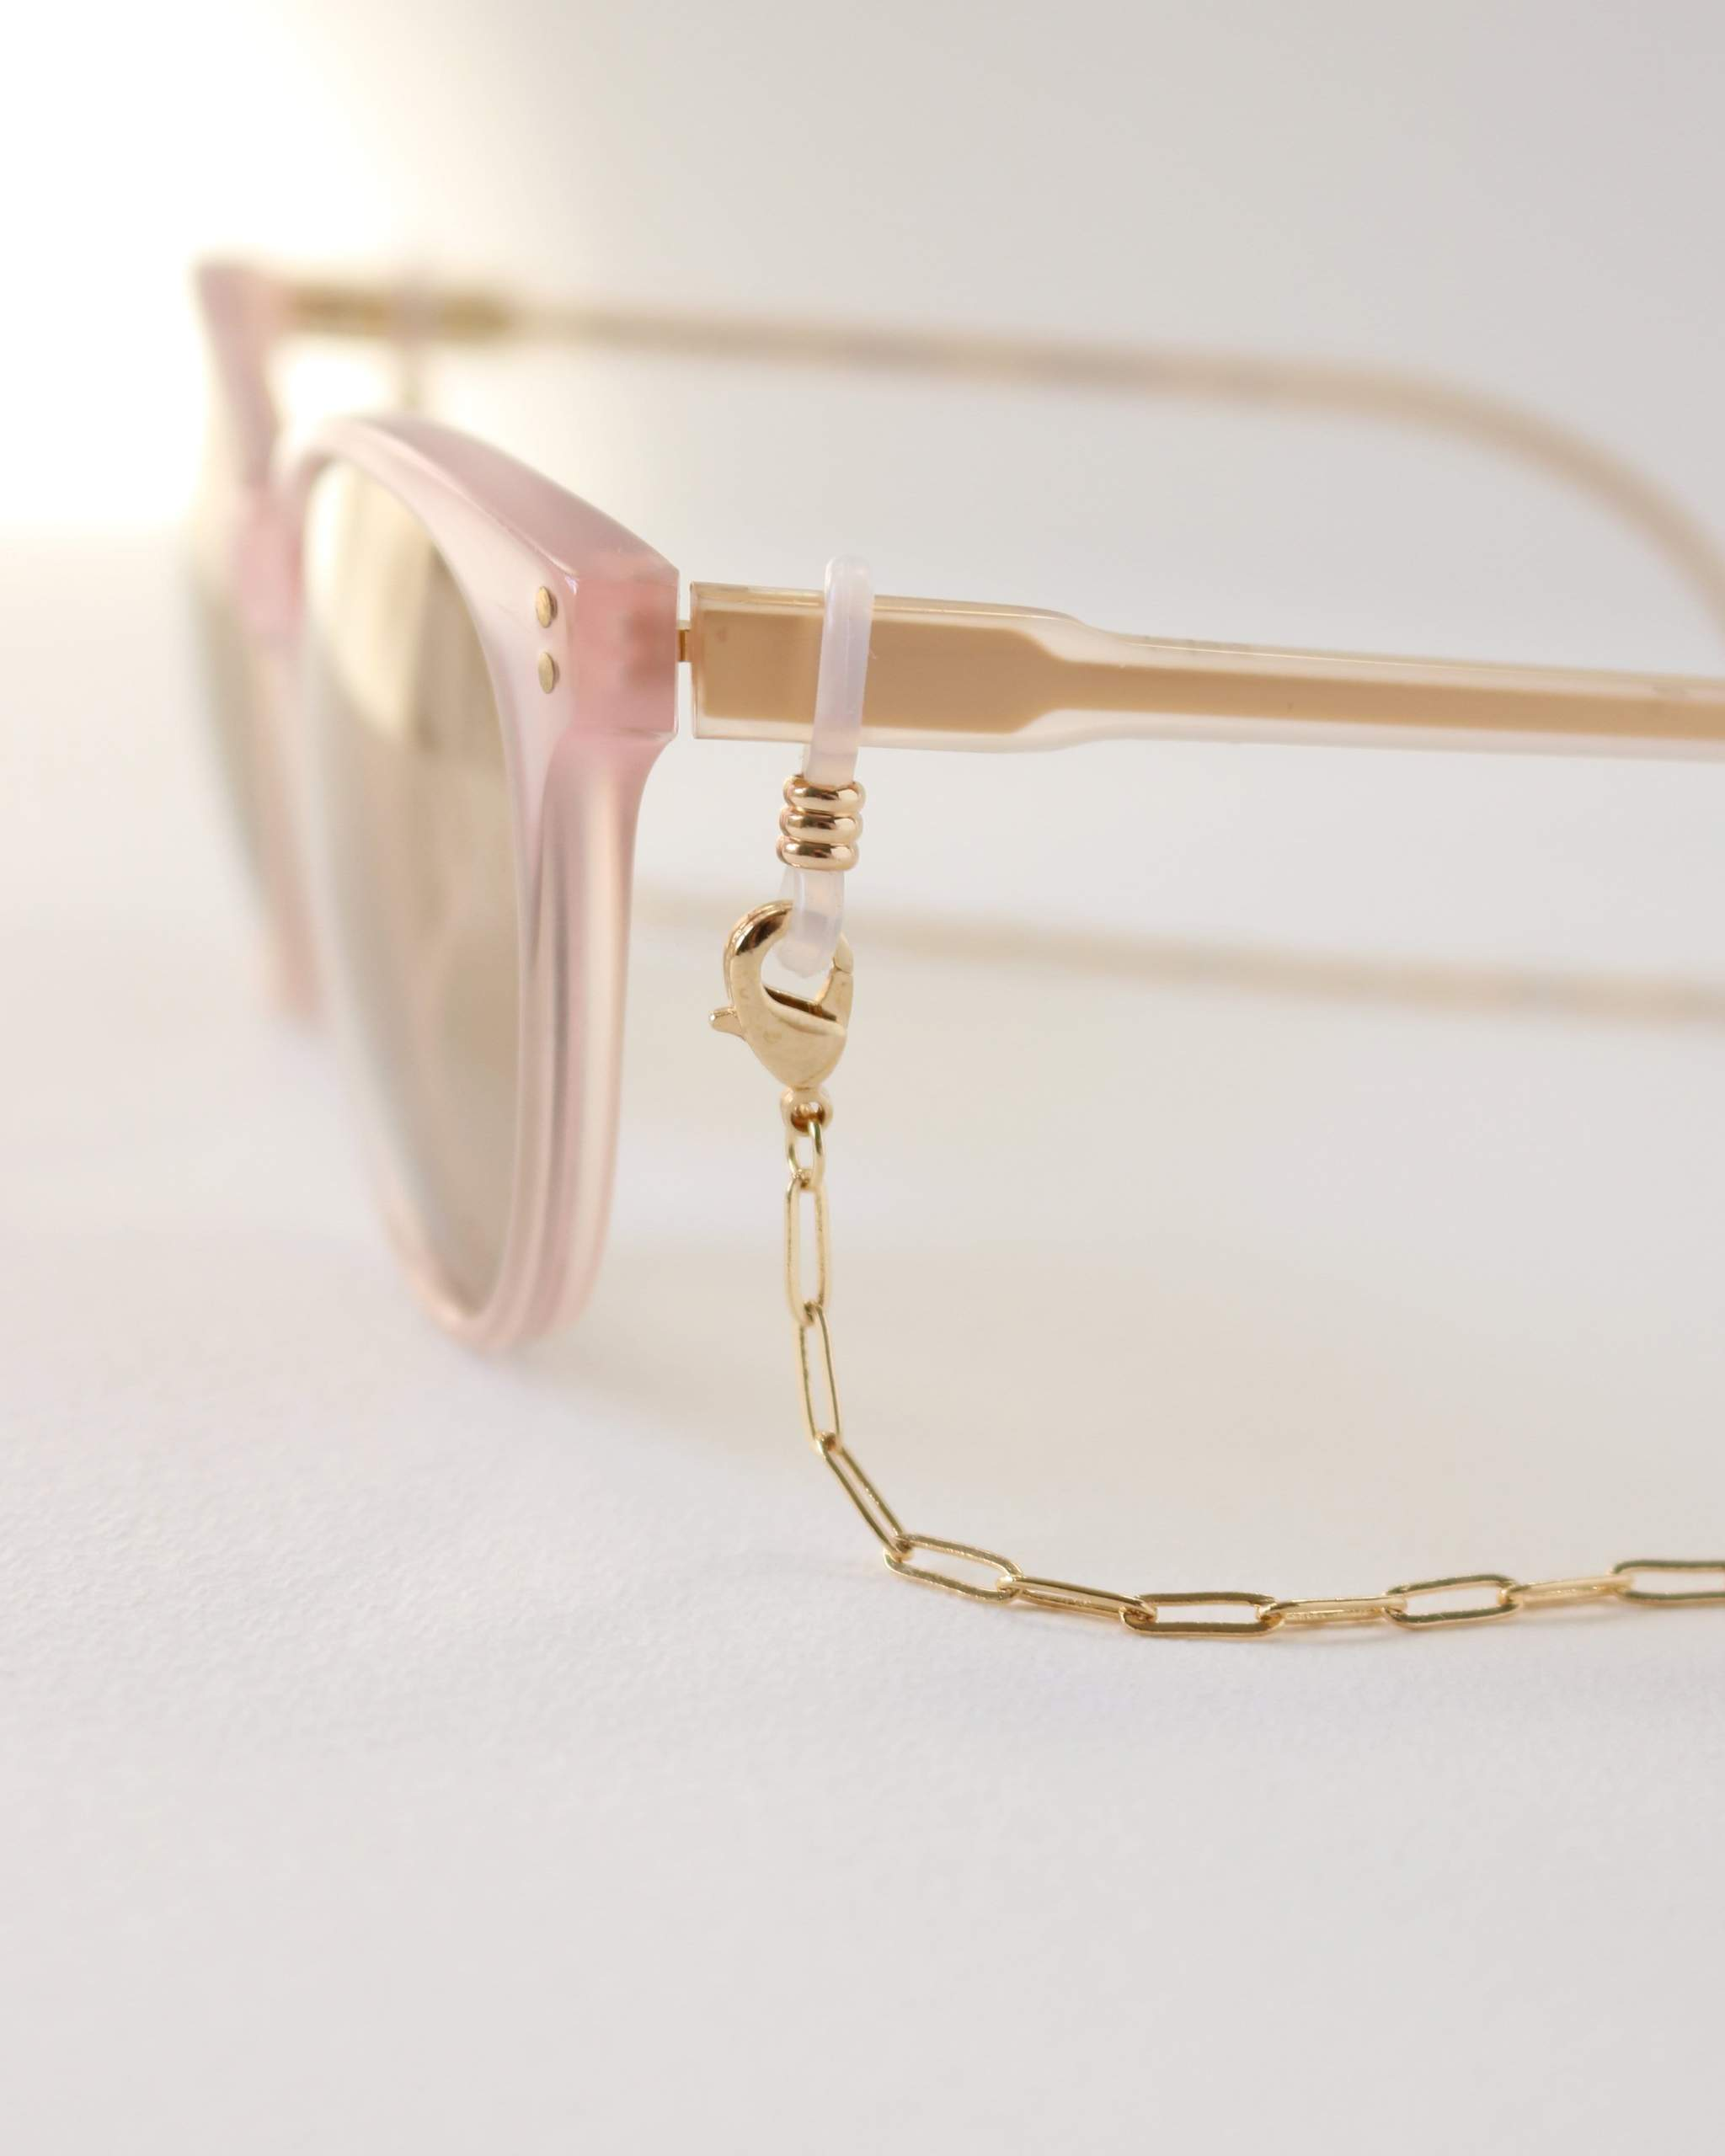 LOVER'S TEMPO - CHARLIE BOYFRIEND CONVERTIBLE GLASSES/ MASK CHAIN IN GOLD